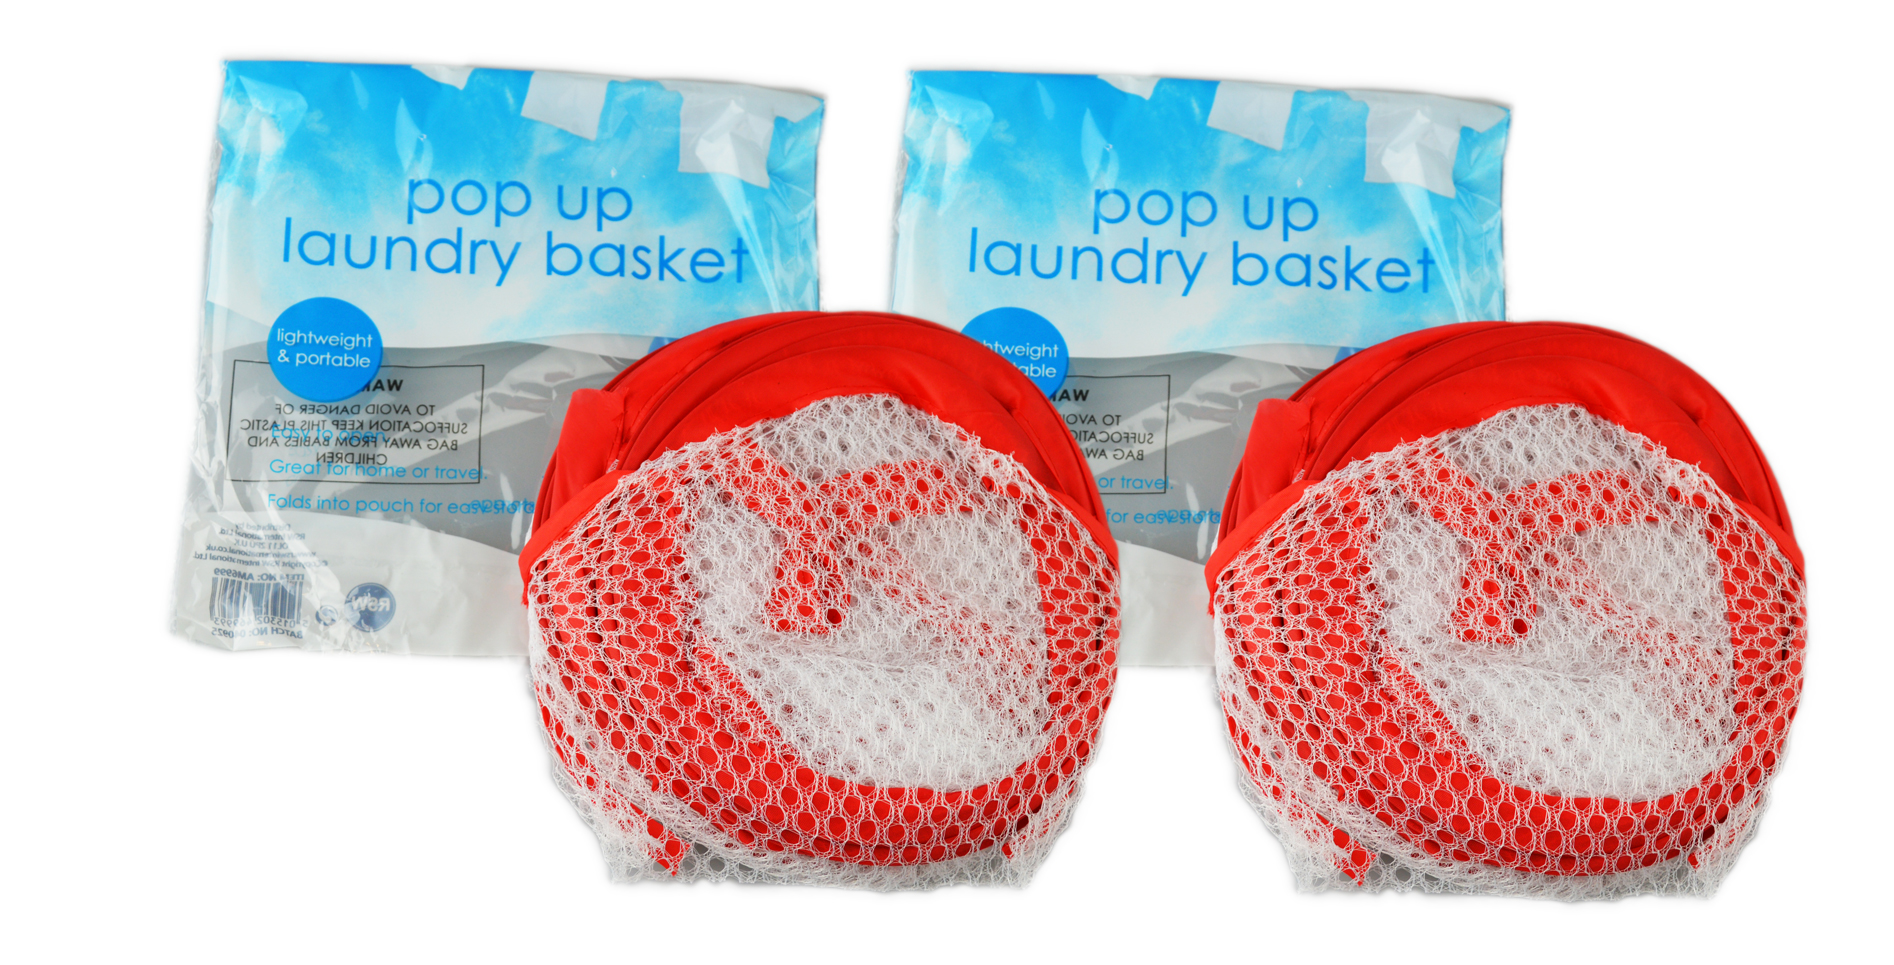 Folding-Mesh-Laundry-Basket-Ideal-for-Home-or-Travel-034-Royle-Home-034 thumbnail 17